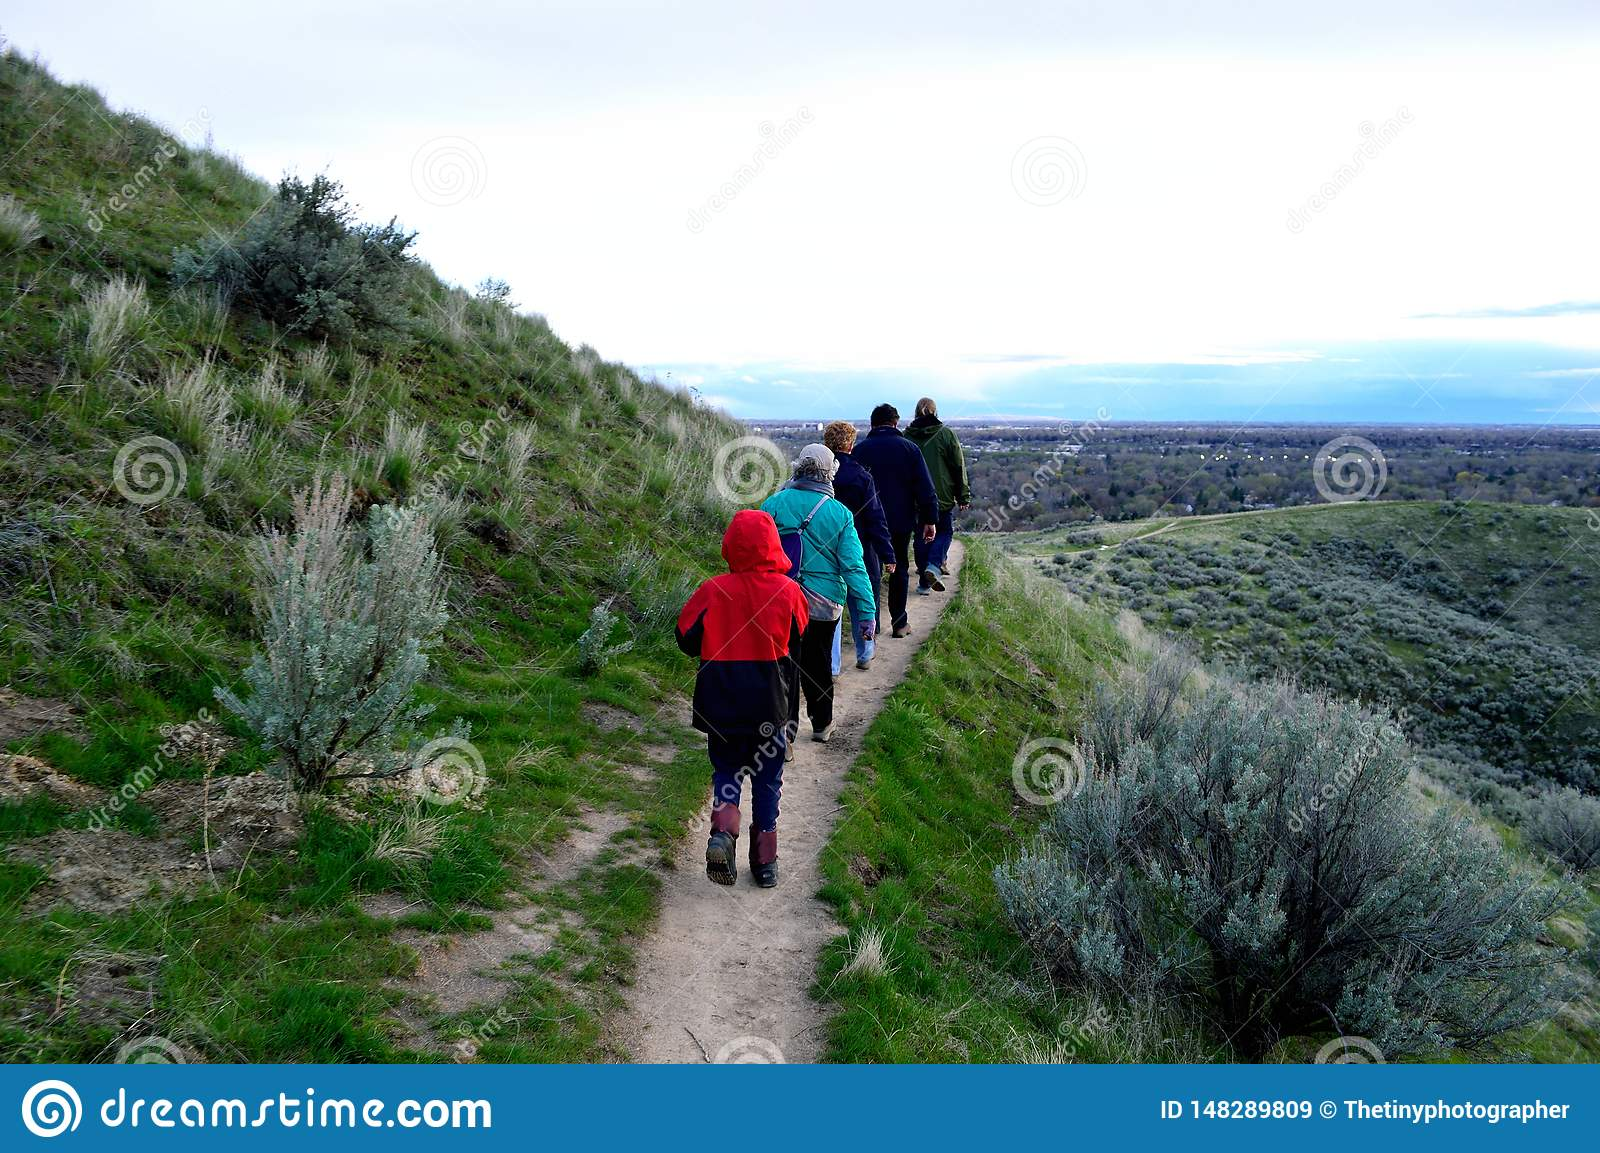 Group of hikers in the Boise Foothills north of the city